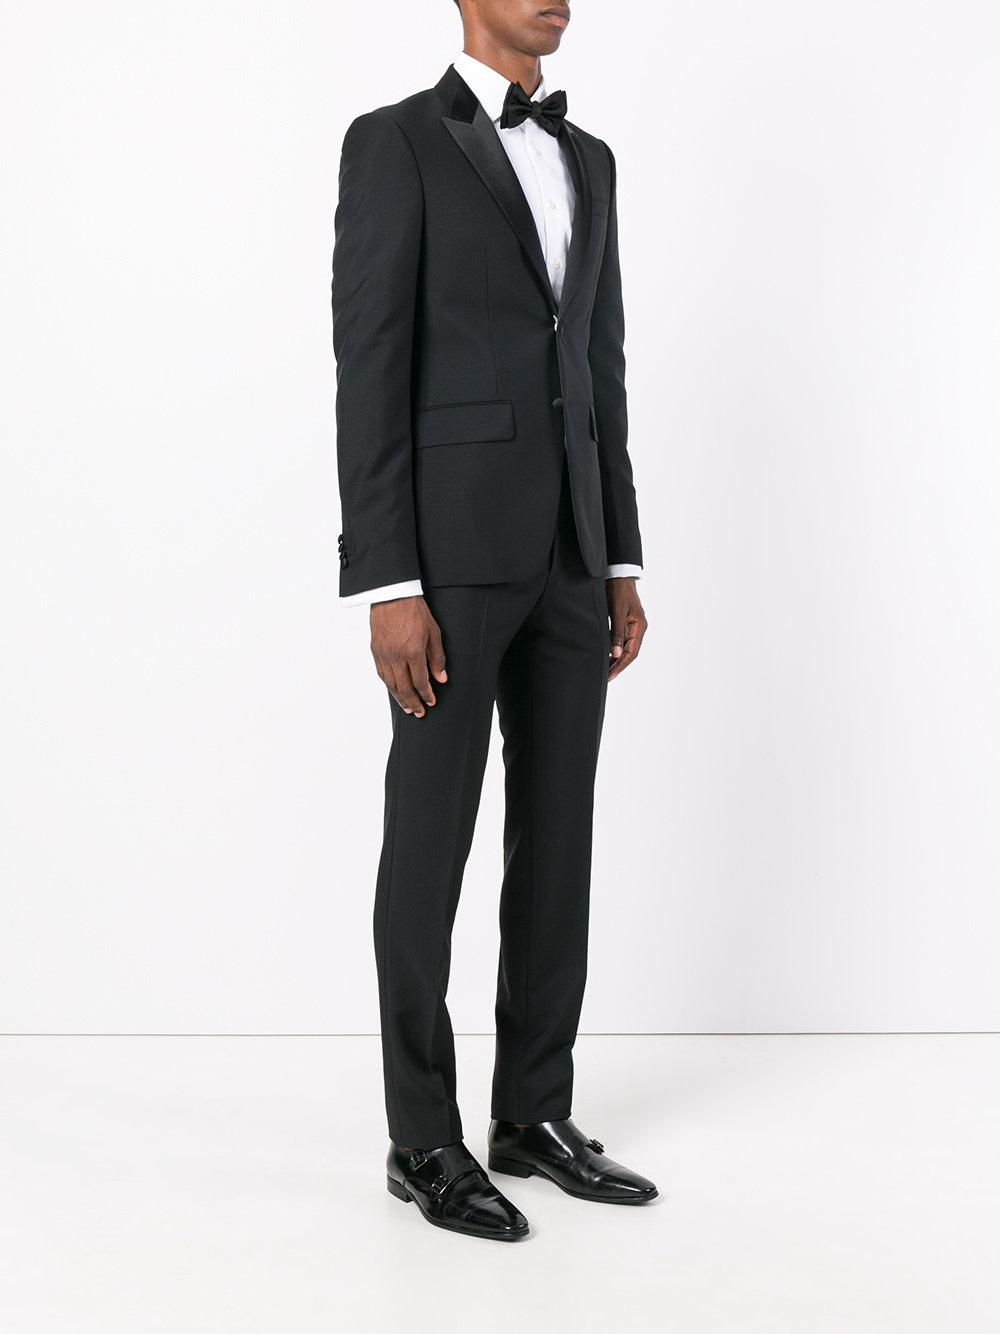 Givenchy Cotton Formal Suit in Black for Men